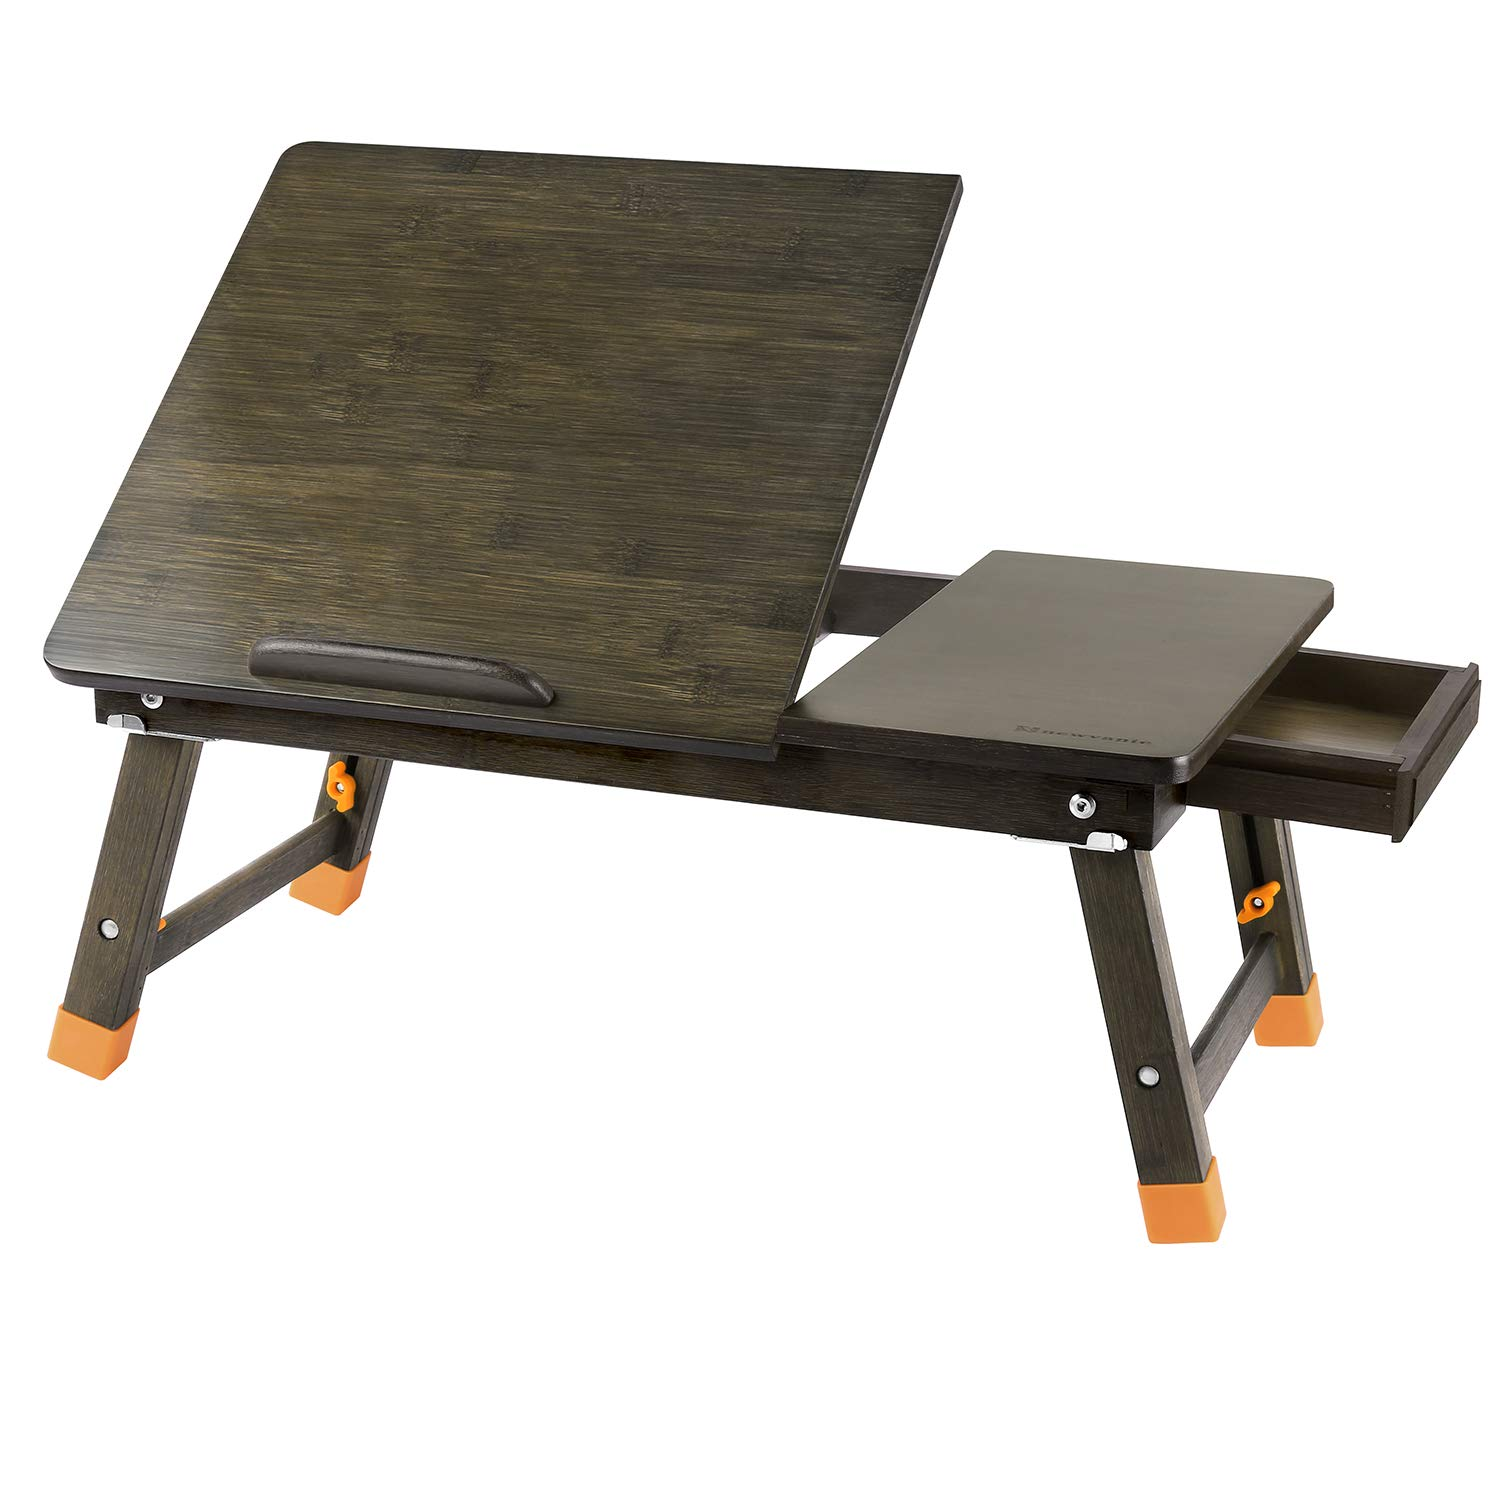 Laptop Desk Large Nnewvante Table Adjustable 100% Bamboo Foldable Breakfast Serving Bed Tray Table w' Tilting Top Drawer-Bronze